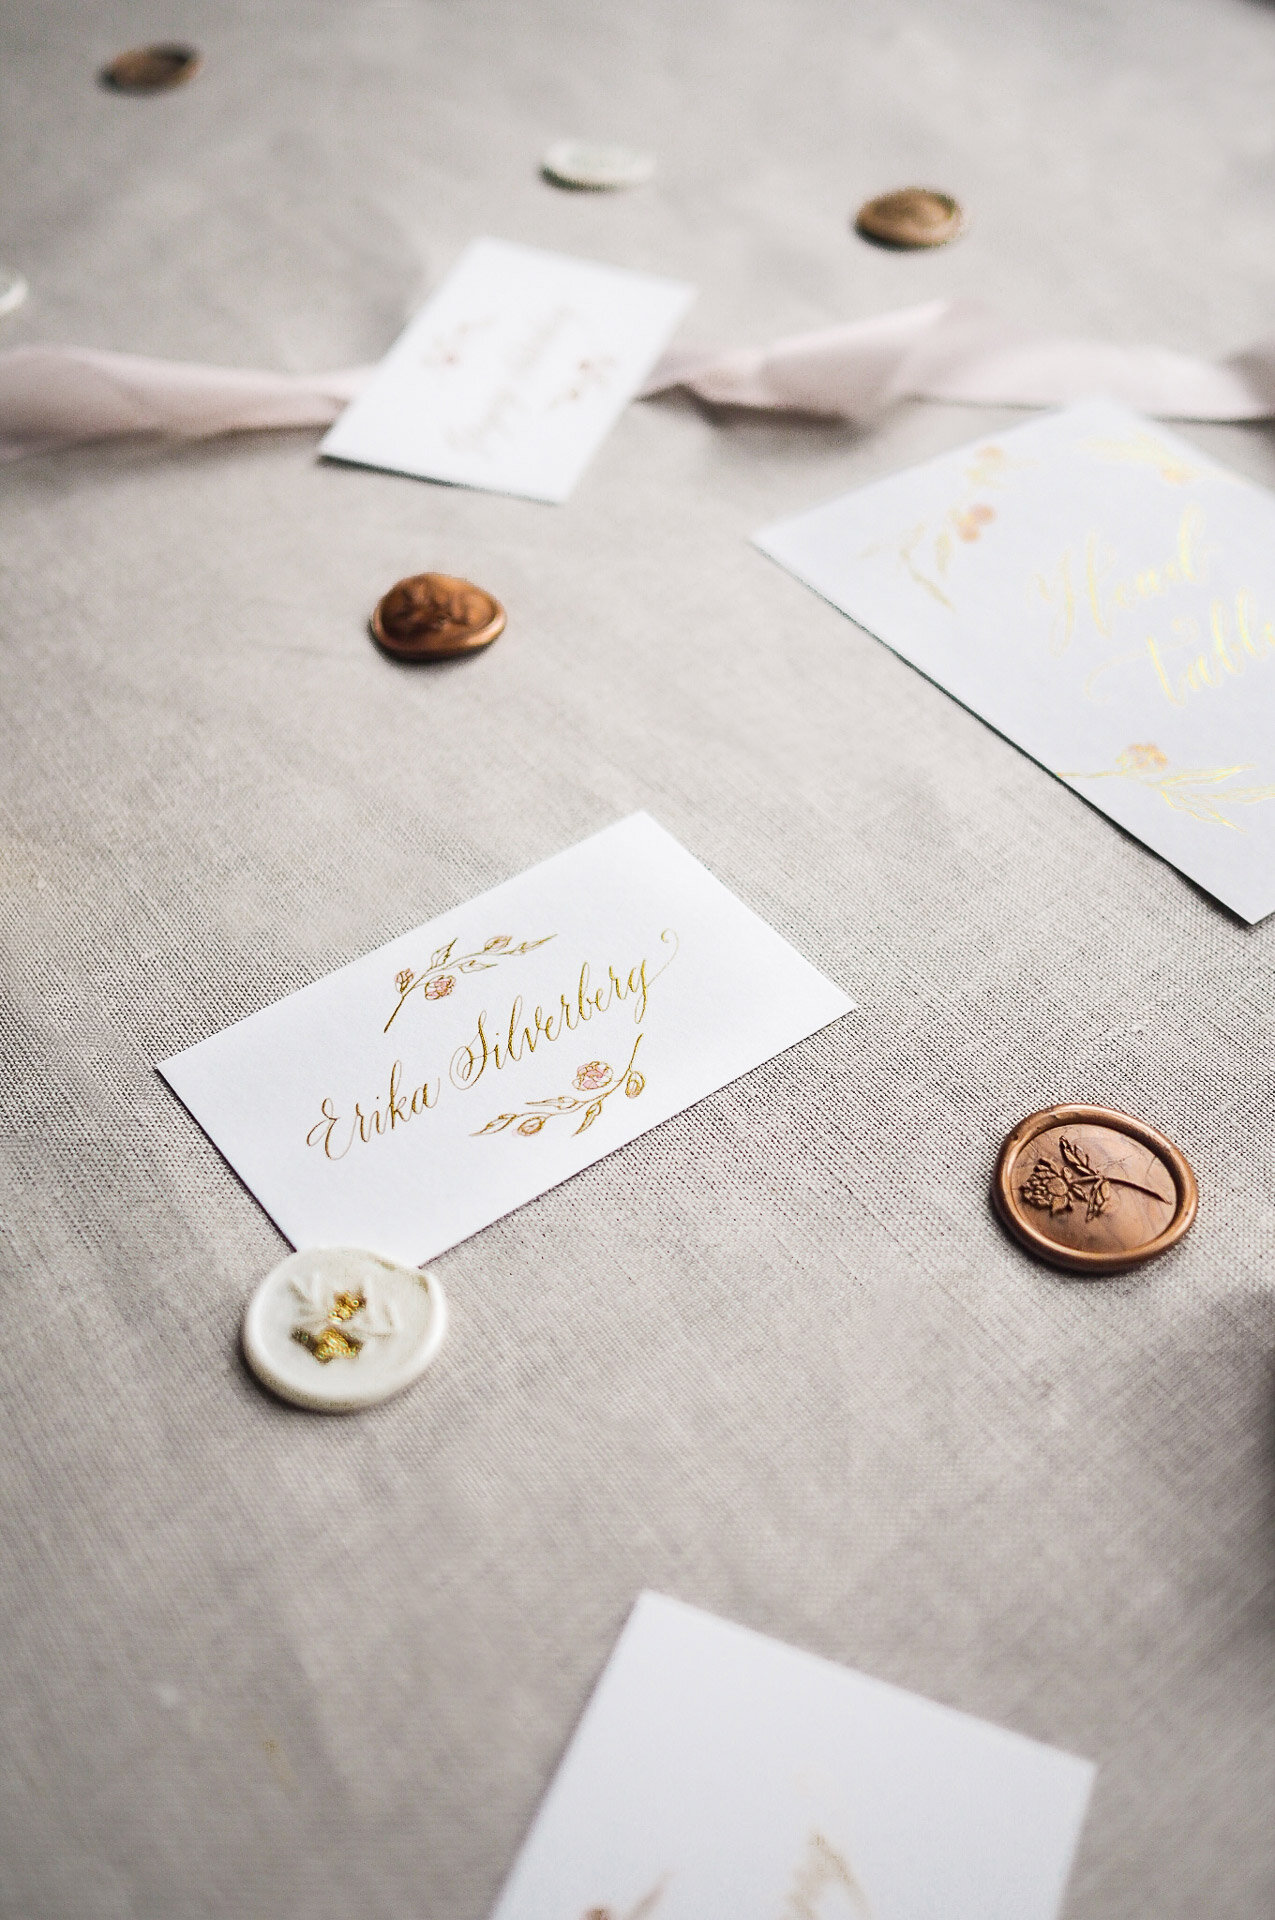 Calligraphy wedding place cards with hand painted floral details.